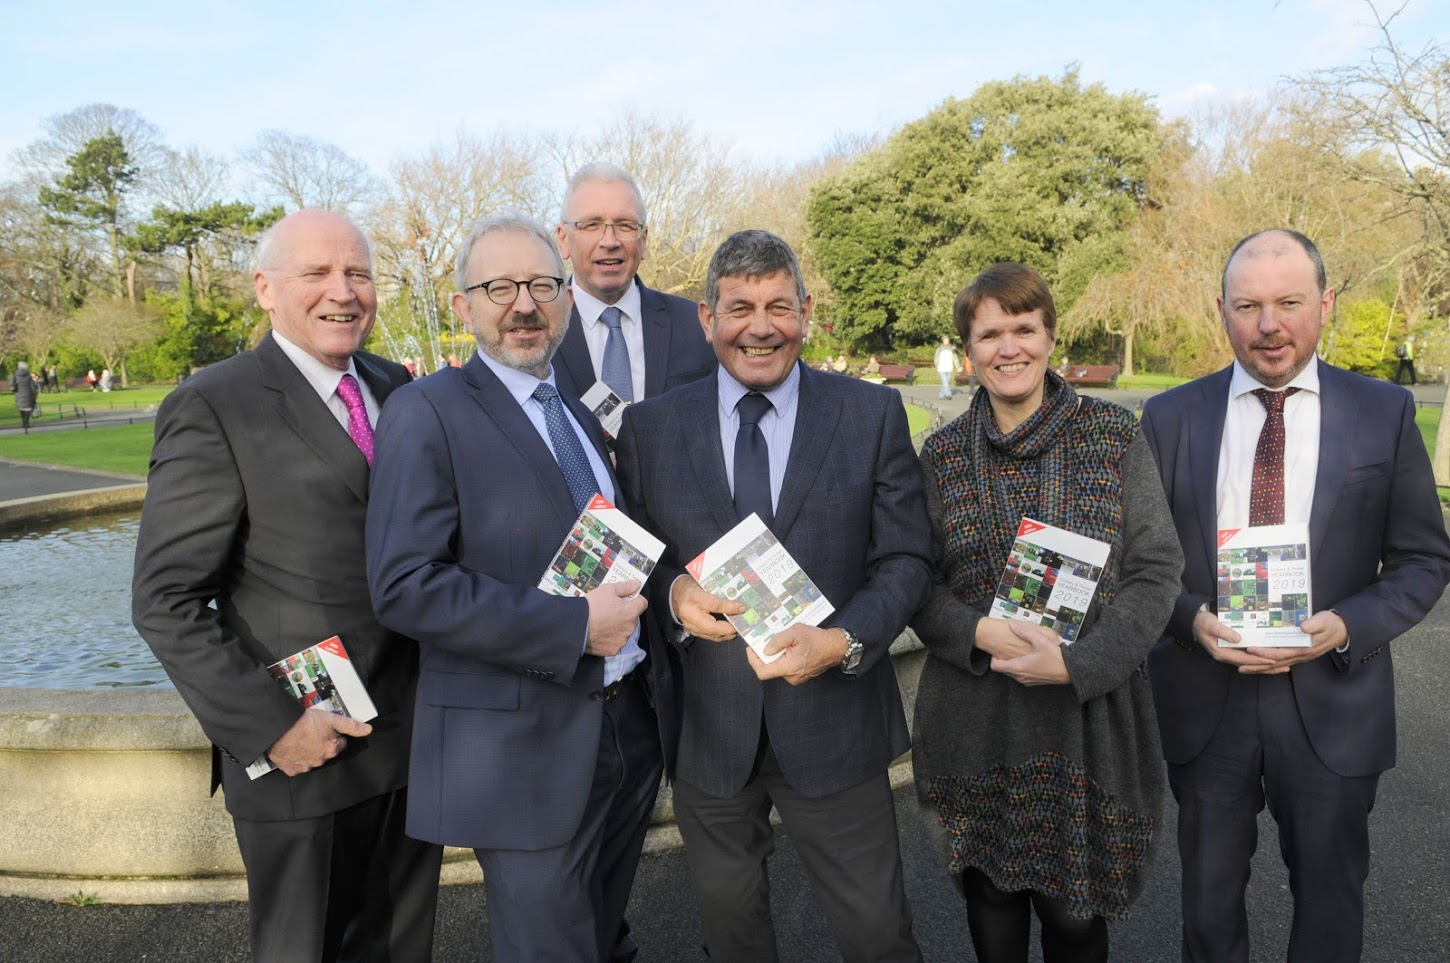 Launch of the 2019 Forestry Yearbook